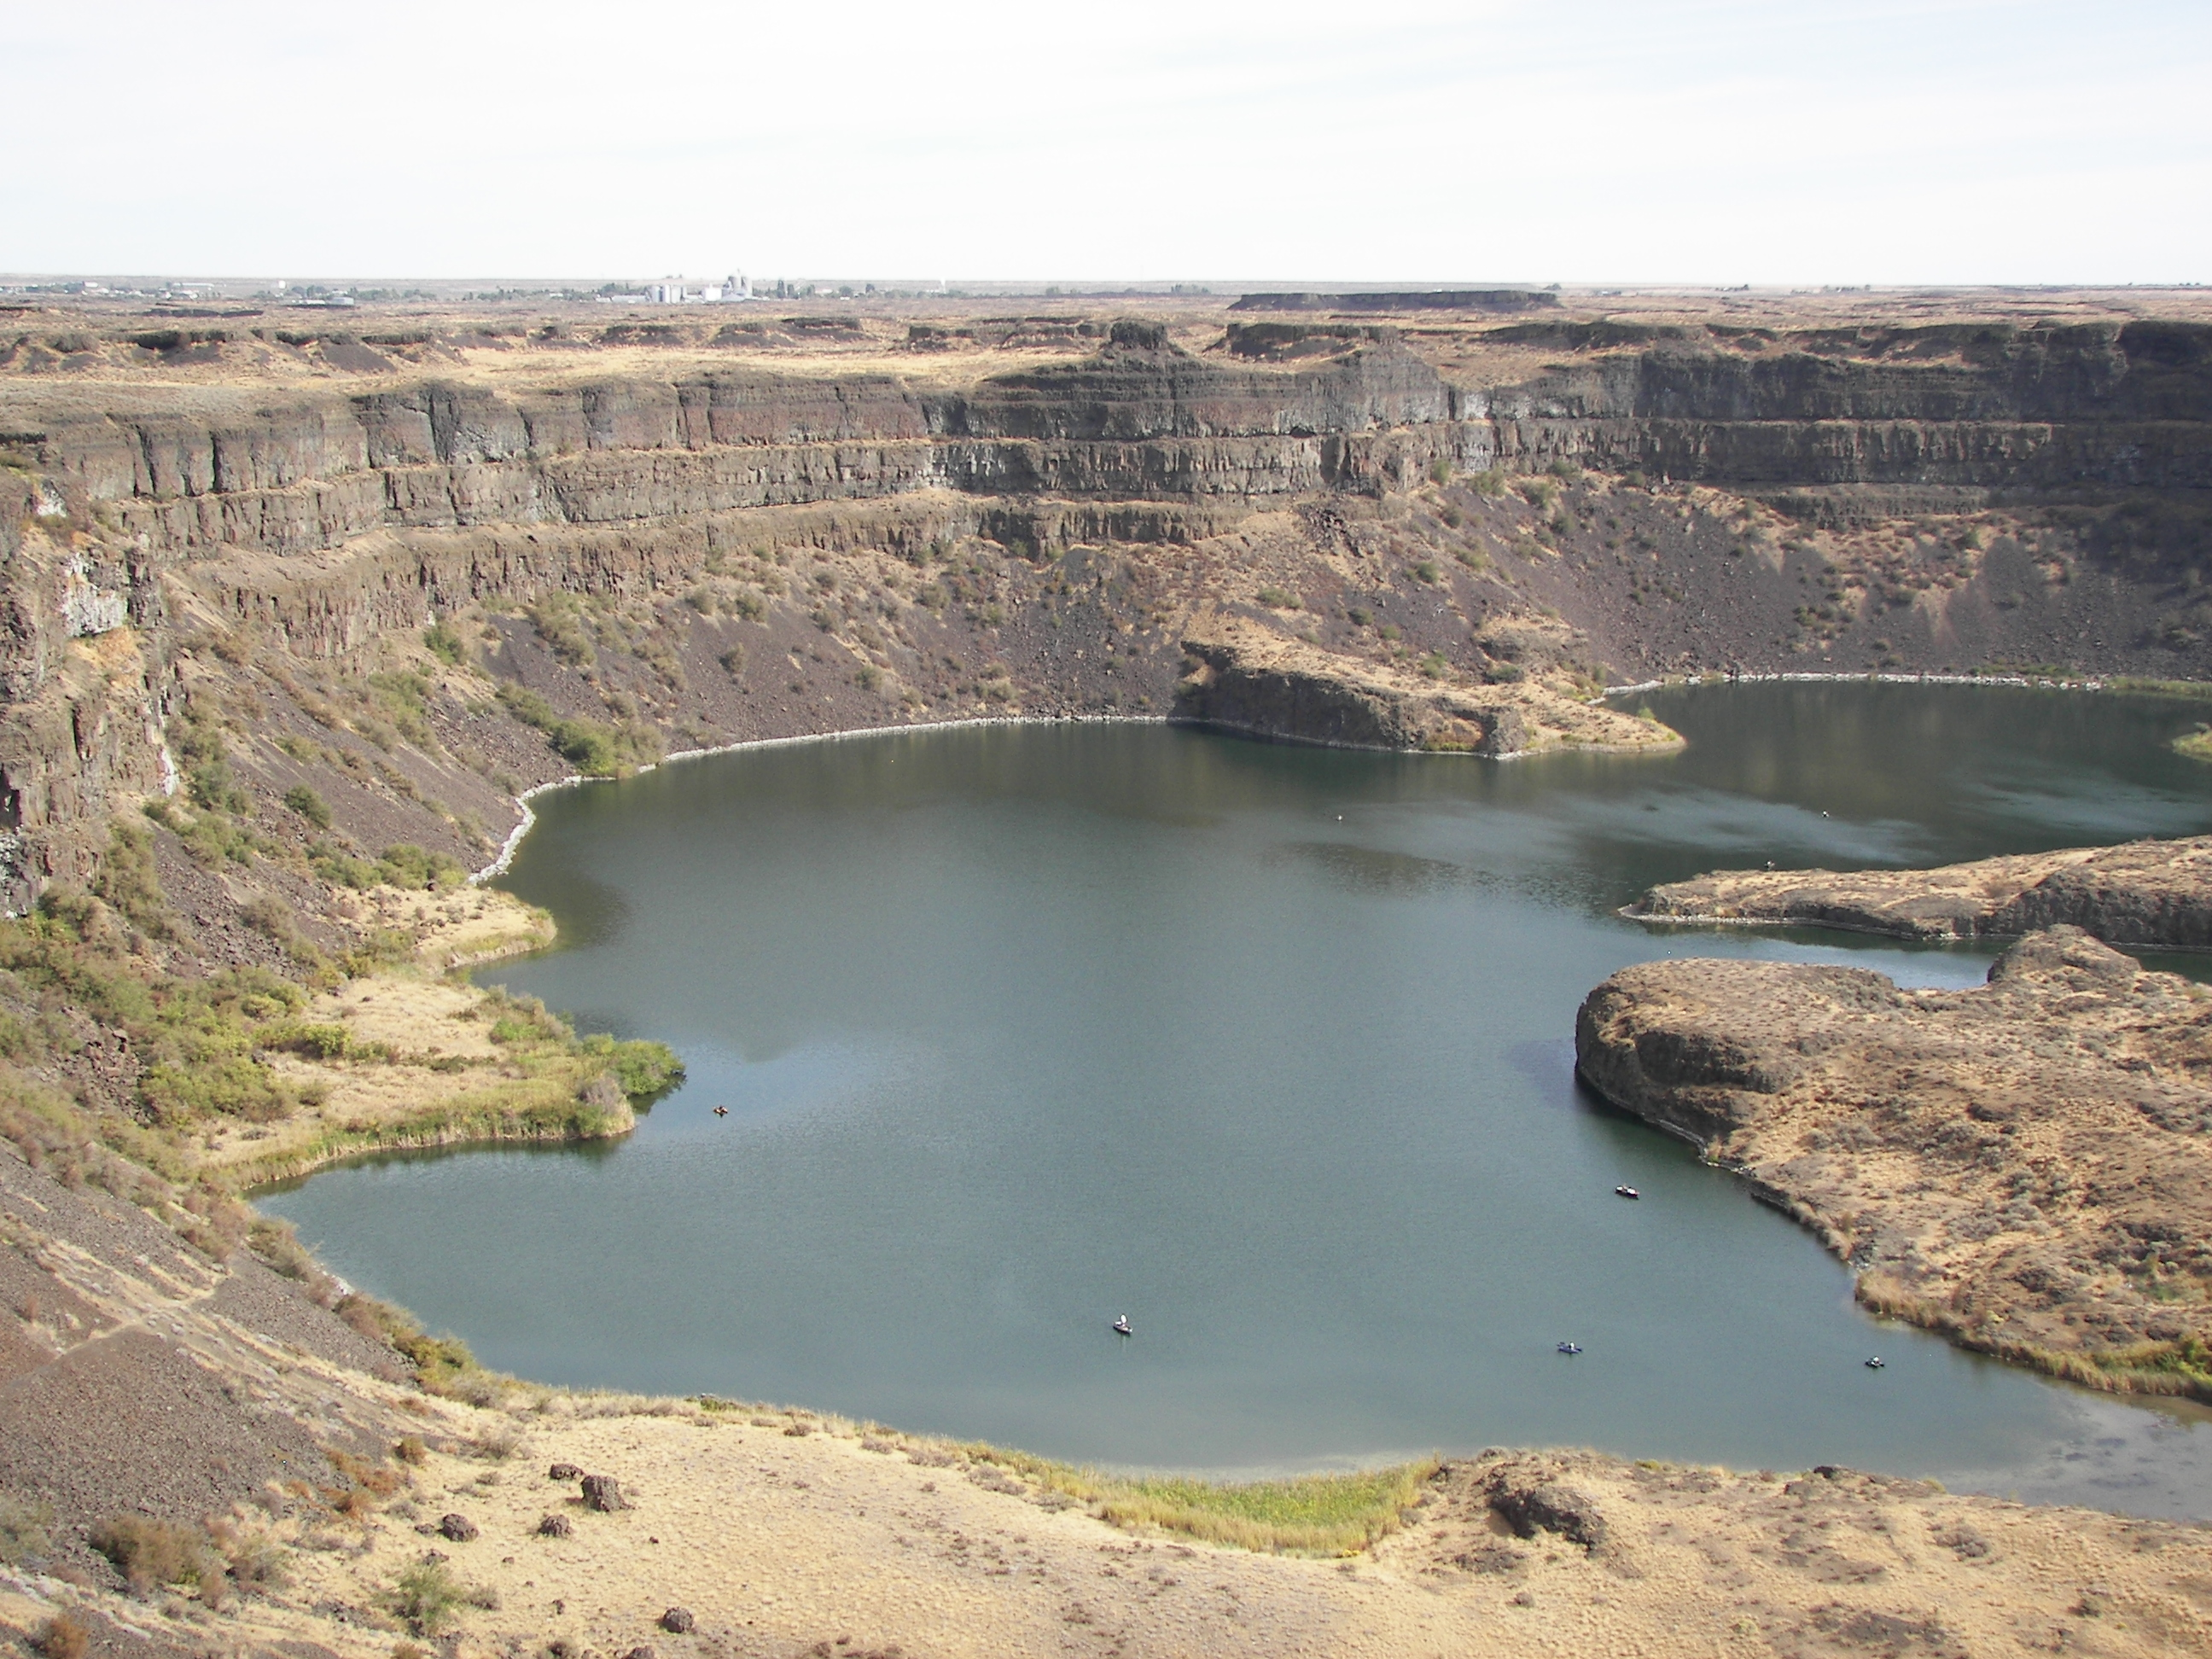 Site-Seeing the Scablands of Washington State ...